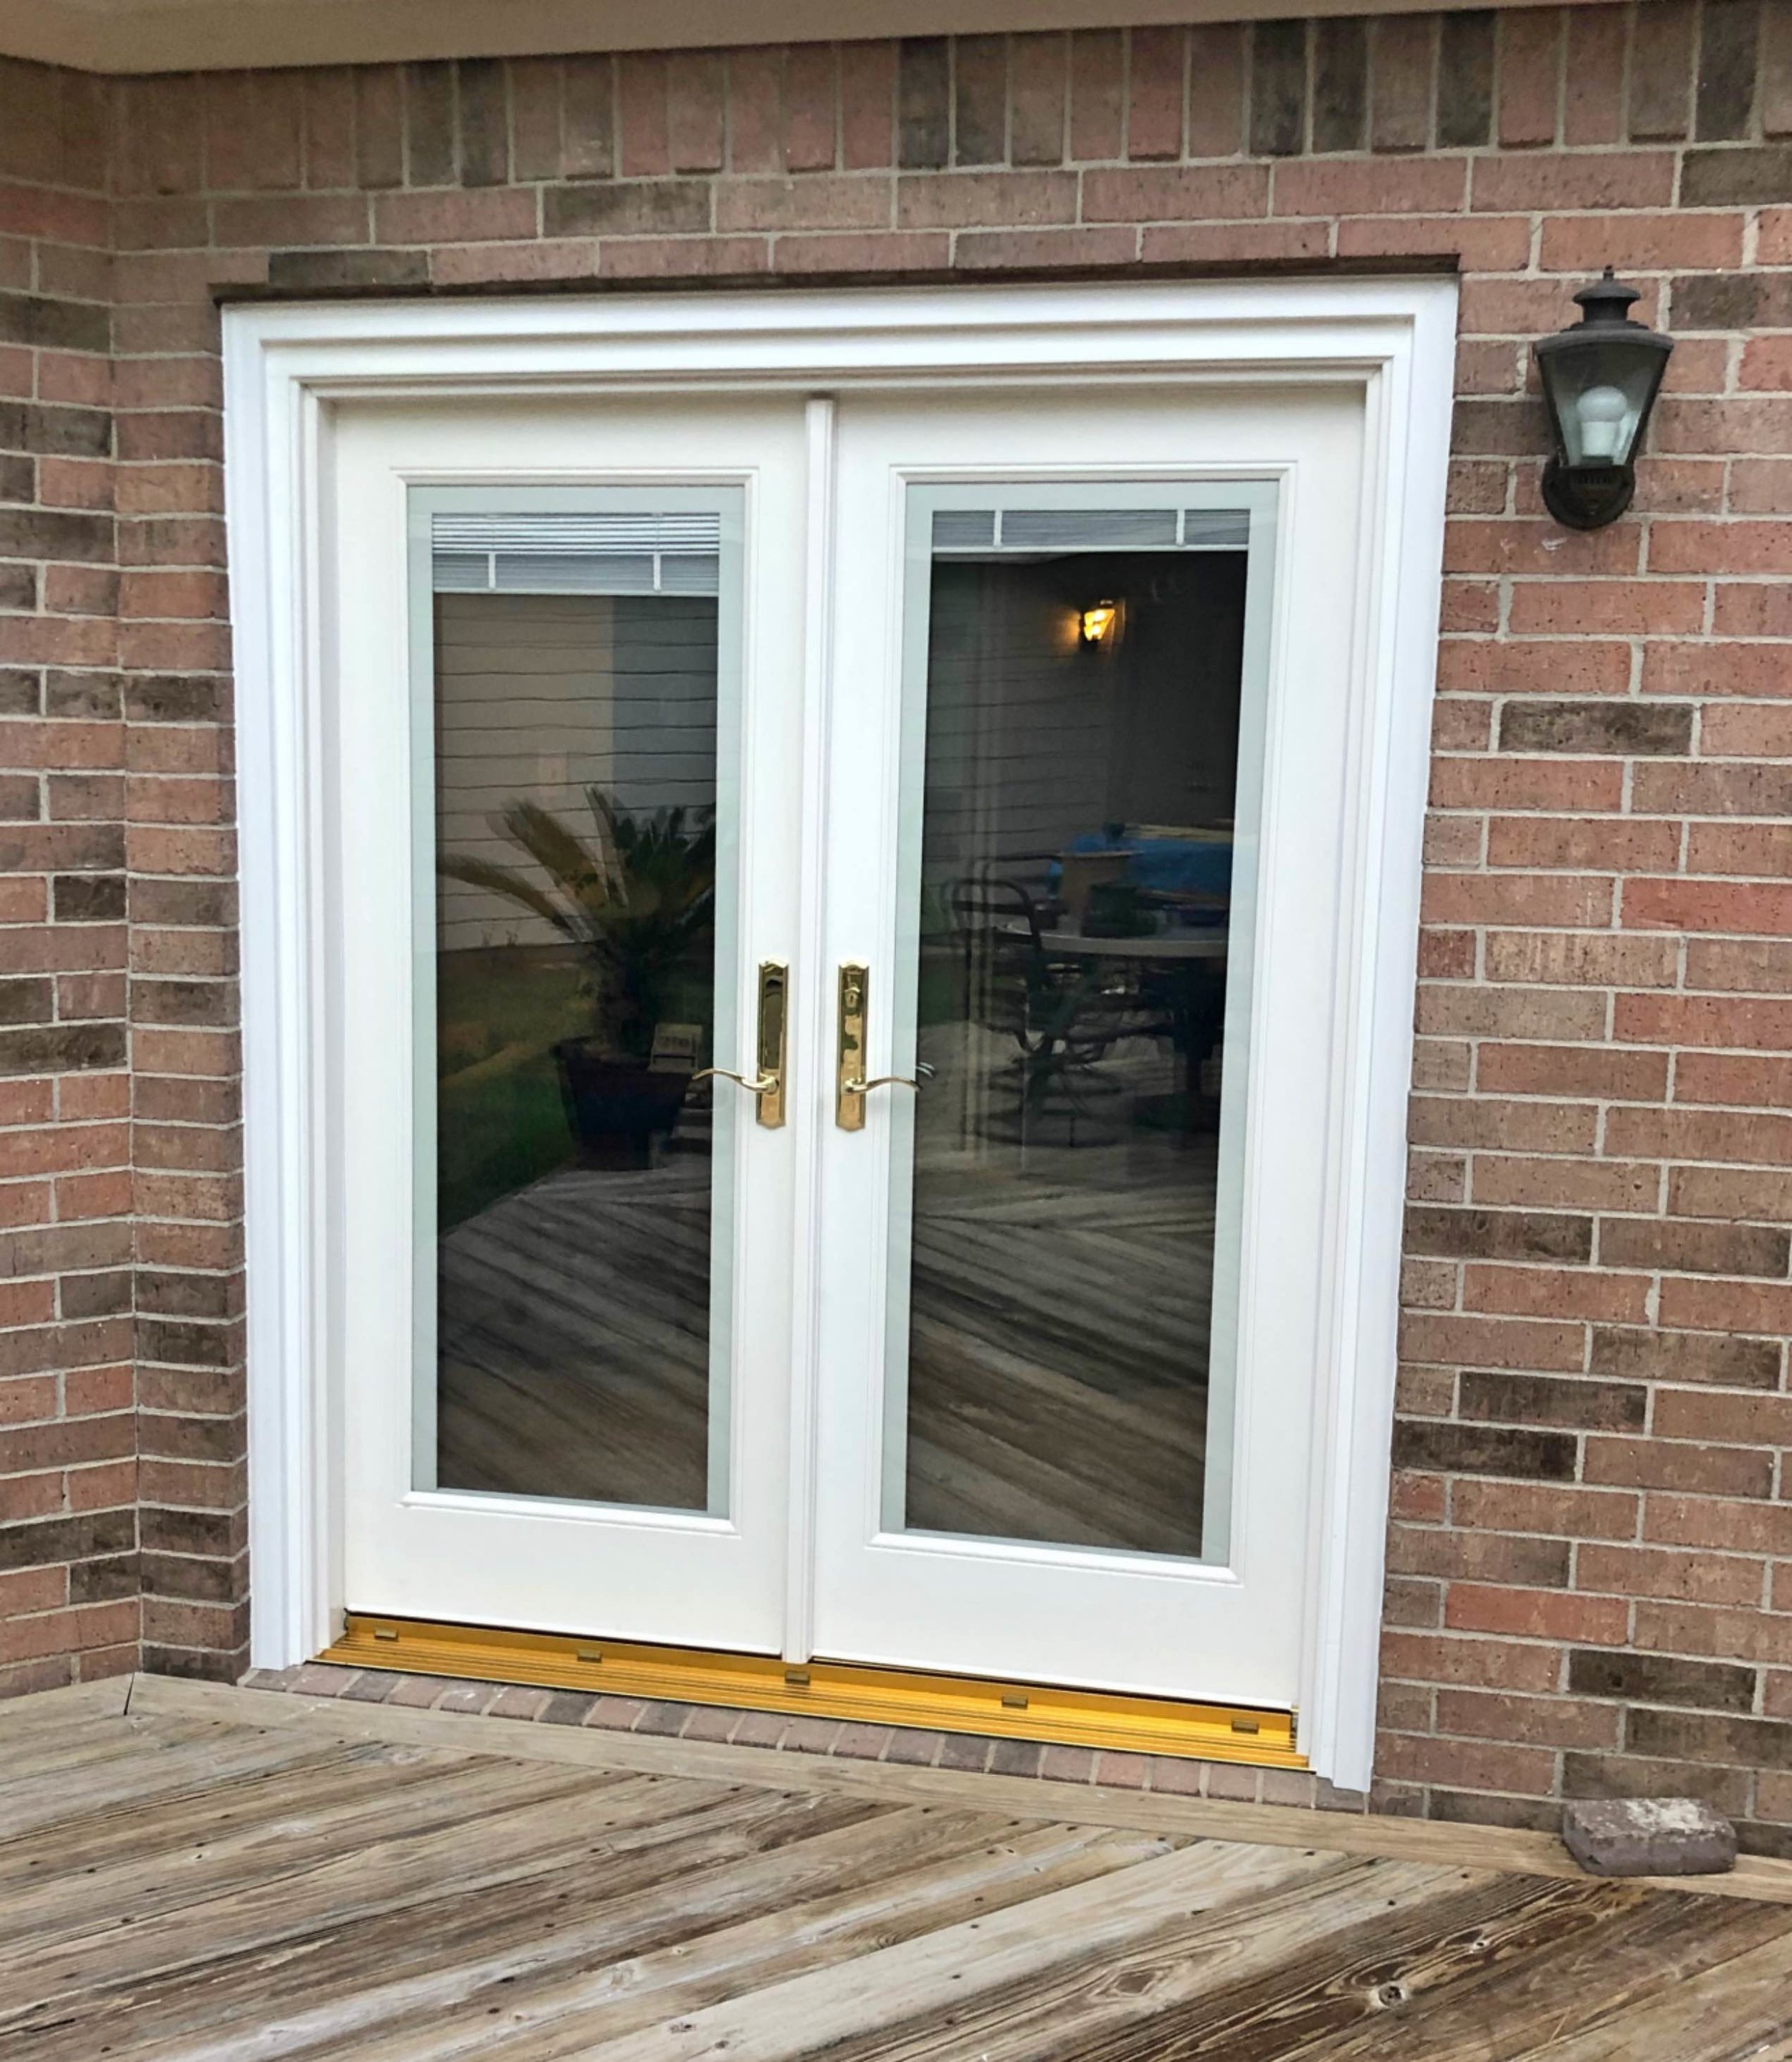 Patio Doors - These Nuema Composite insulated door patio doors are also energy-efficient. There is an option for a double-locking feature. You can also decide if you would like shades on the inside of the glass, and what color door handles you would prefer.